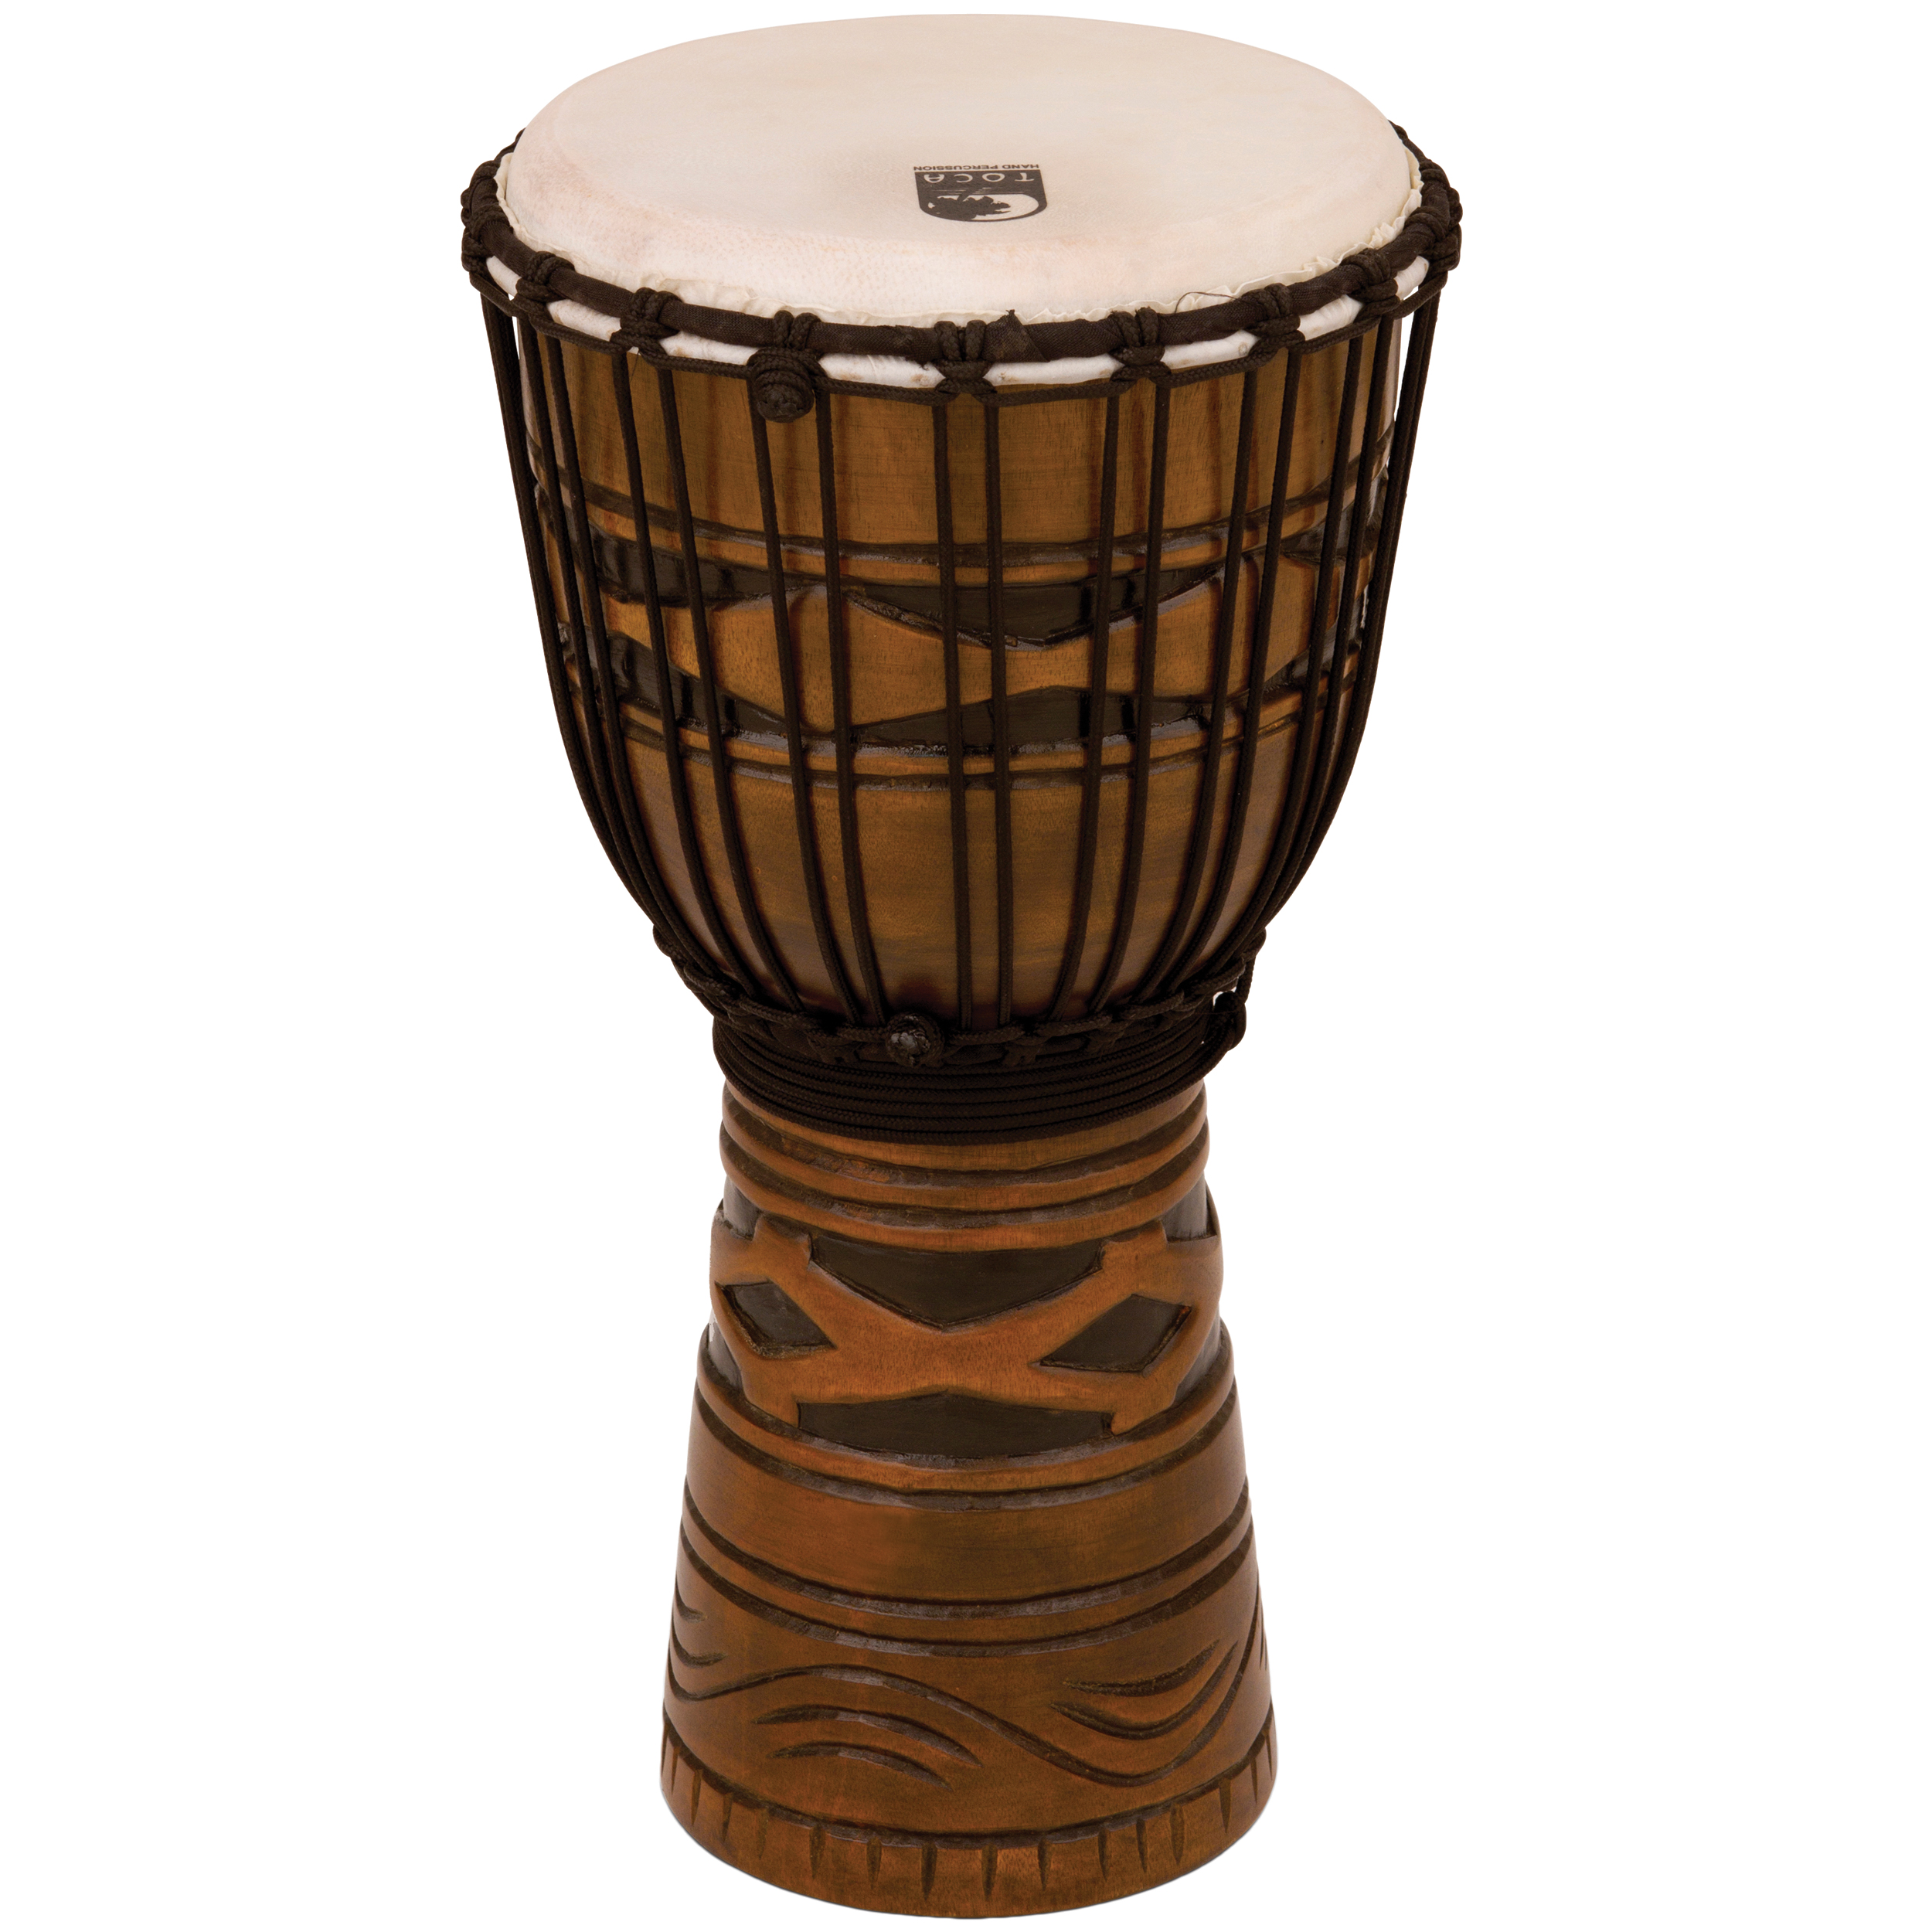 "Toca 10"" Origins Wood Djembe"